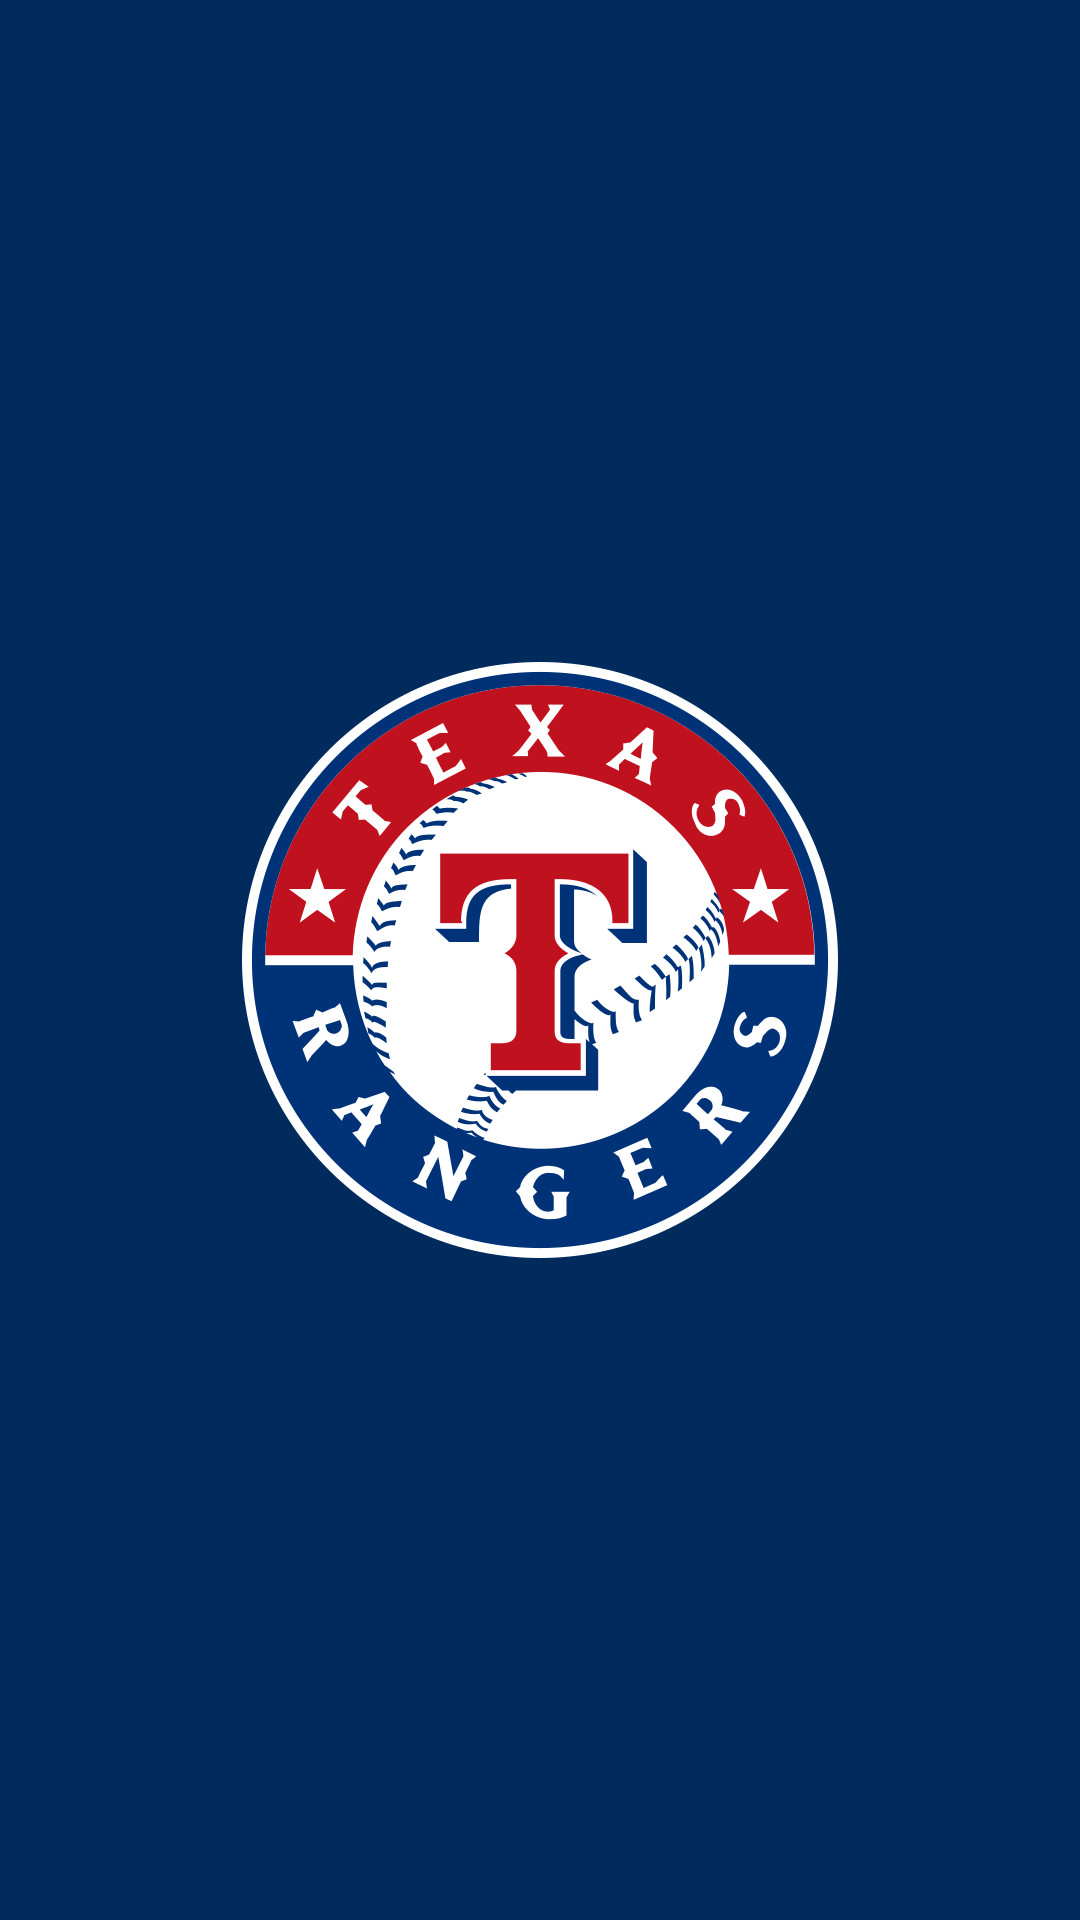 … Texas Rangers HD Wallpaper for Iphone 7 in Texas Rangers Phone  Wallpapers …